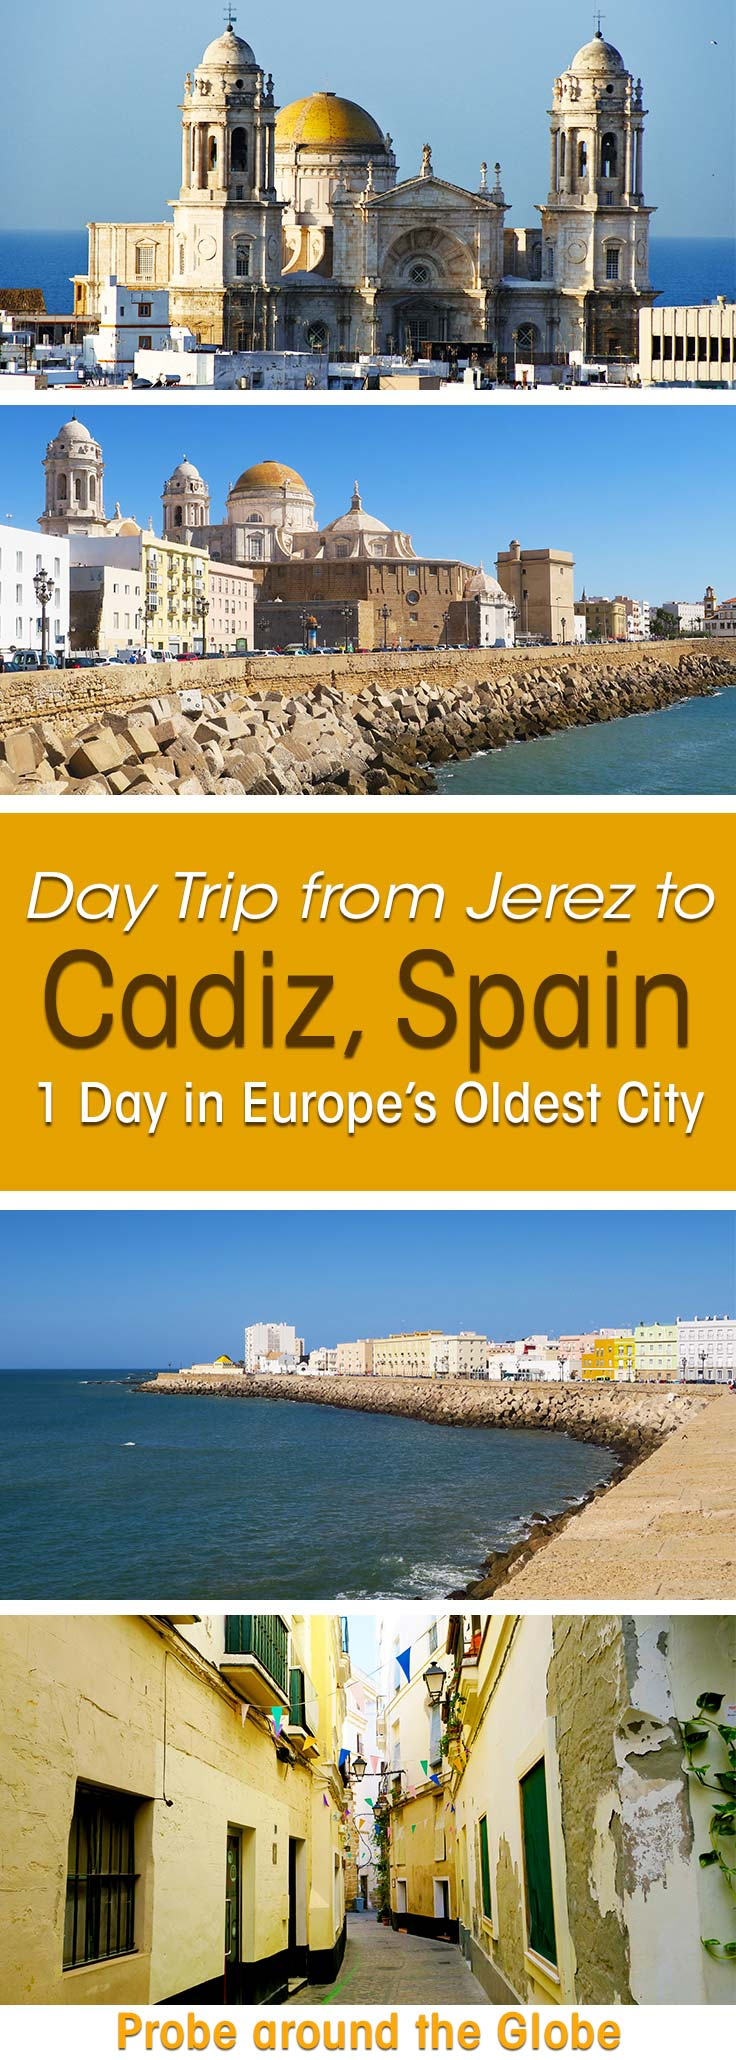 4 images of the city of Cadiz Spain showing the Cathedral of Cadiz, view on old Cadiz, old streets of Cadiz and the water front. Text overlay saying: Day trip from Jerez to Cadiz Spain. 1 day in Europe's oldest city.